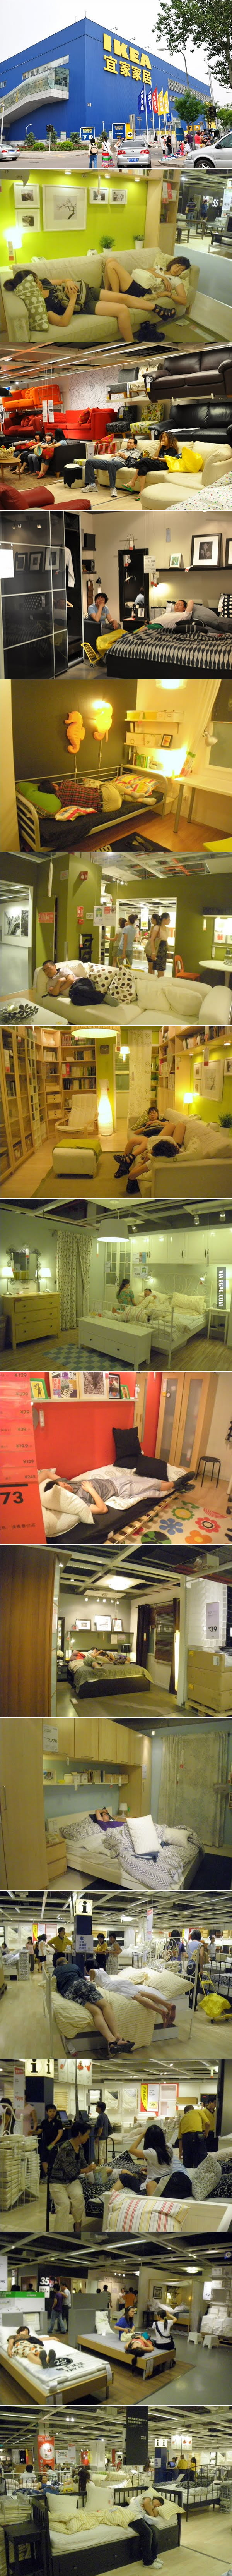 IKEA in China.